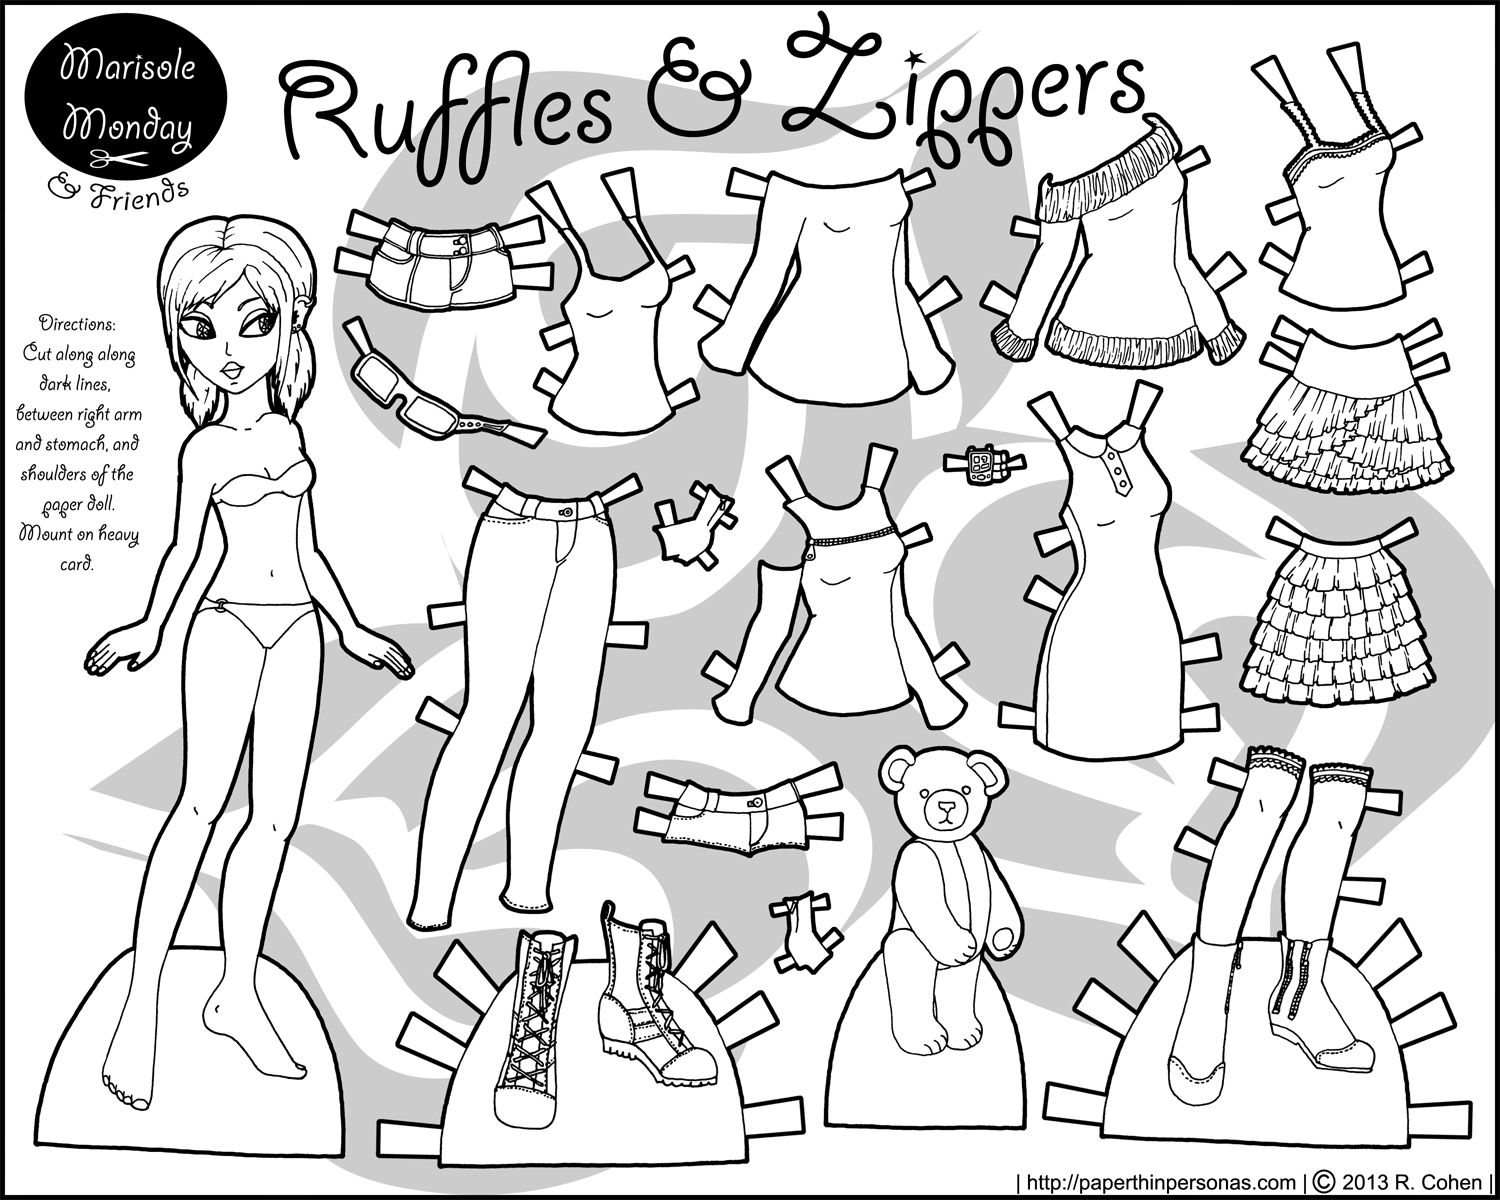 Zippers & Ruffles: Paper Doll With Clothes to Color